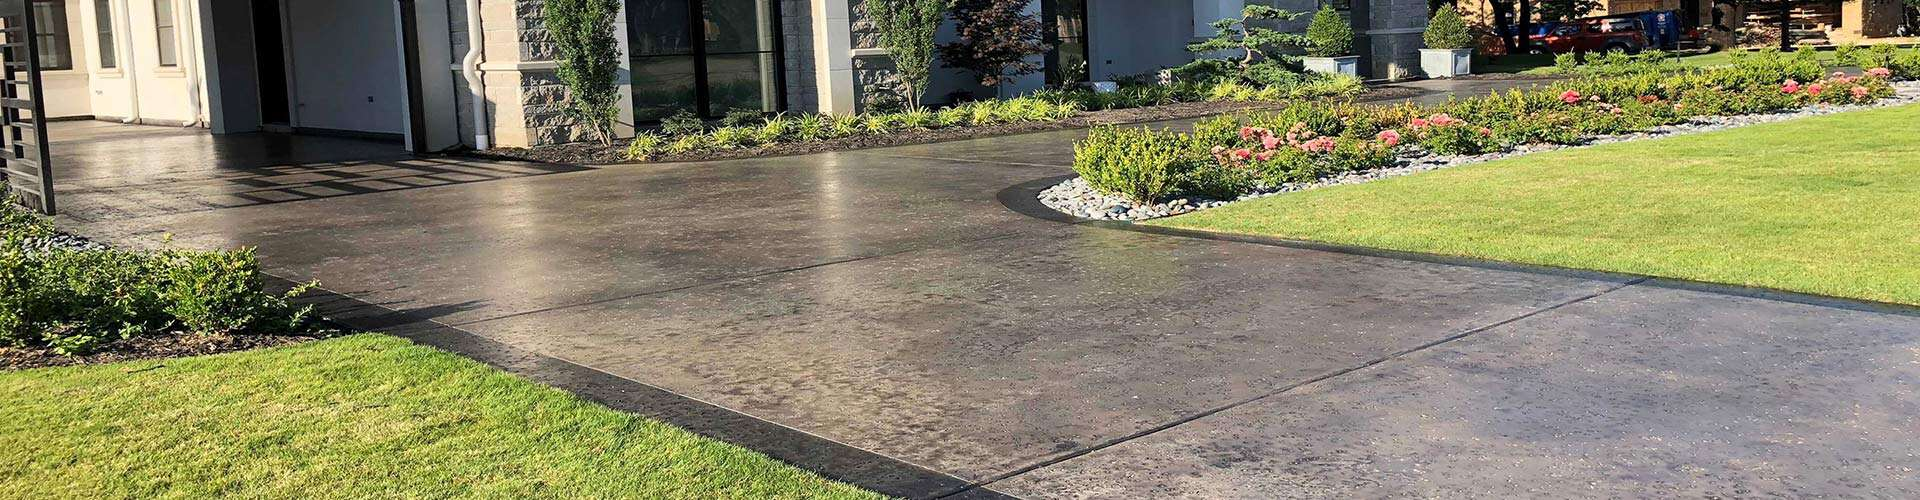 Residential Acid Stained Driveway